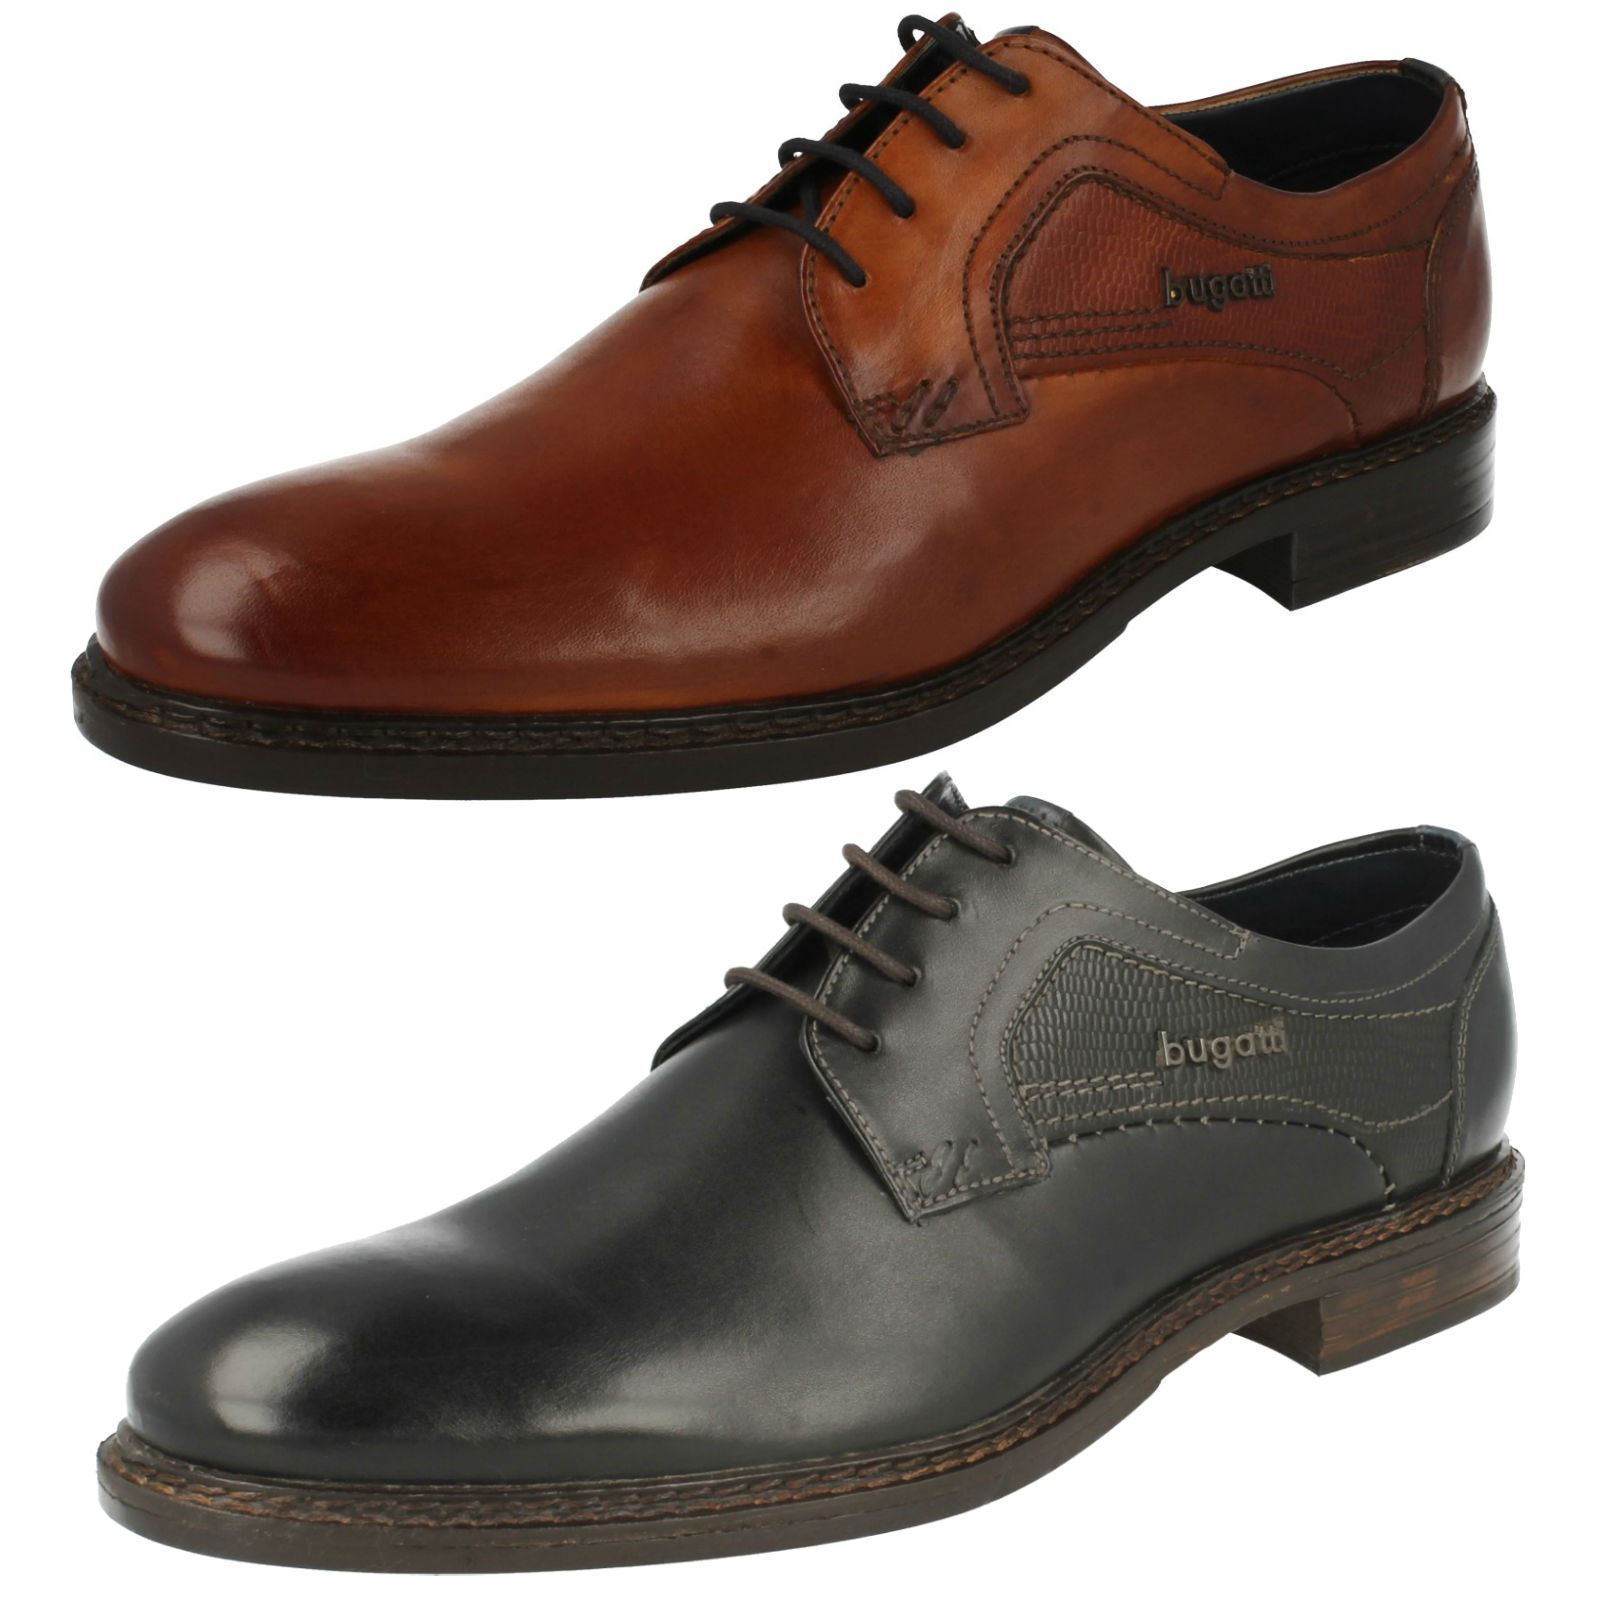 Herren Bugatti Lace Up Formal Formal Up Schuhes Bene bcb526